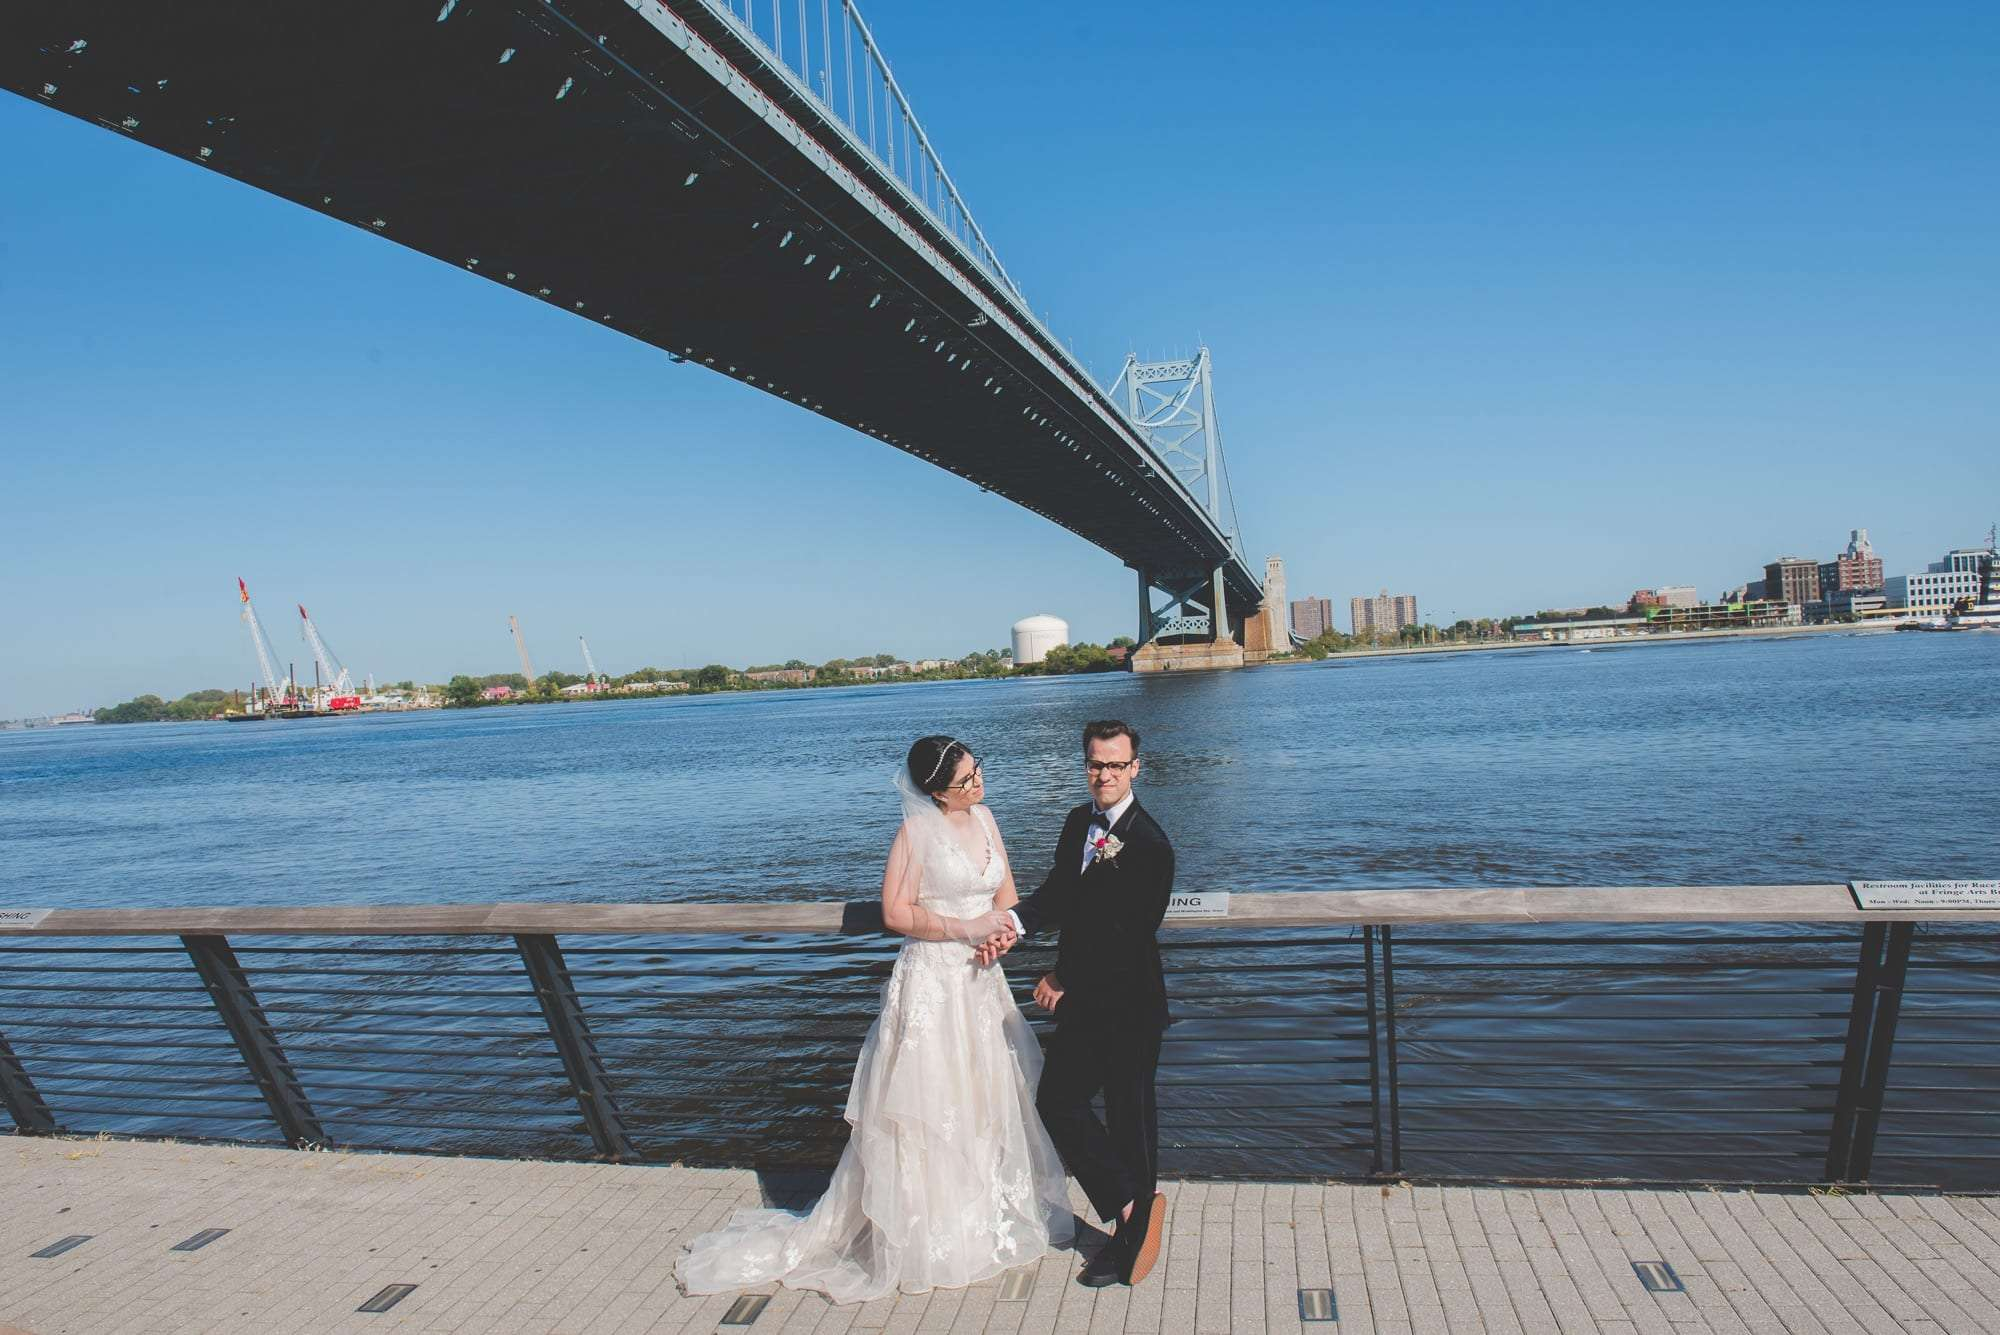 do you need a permit for wedding photos at race street pier philadelphia